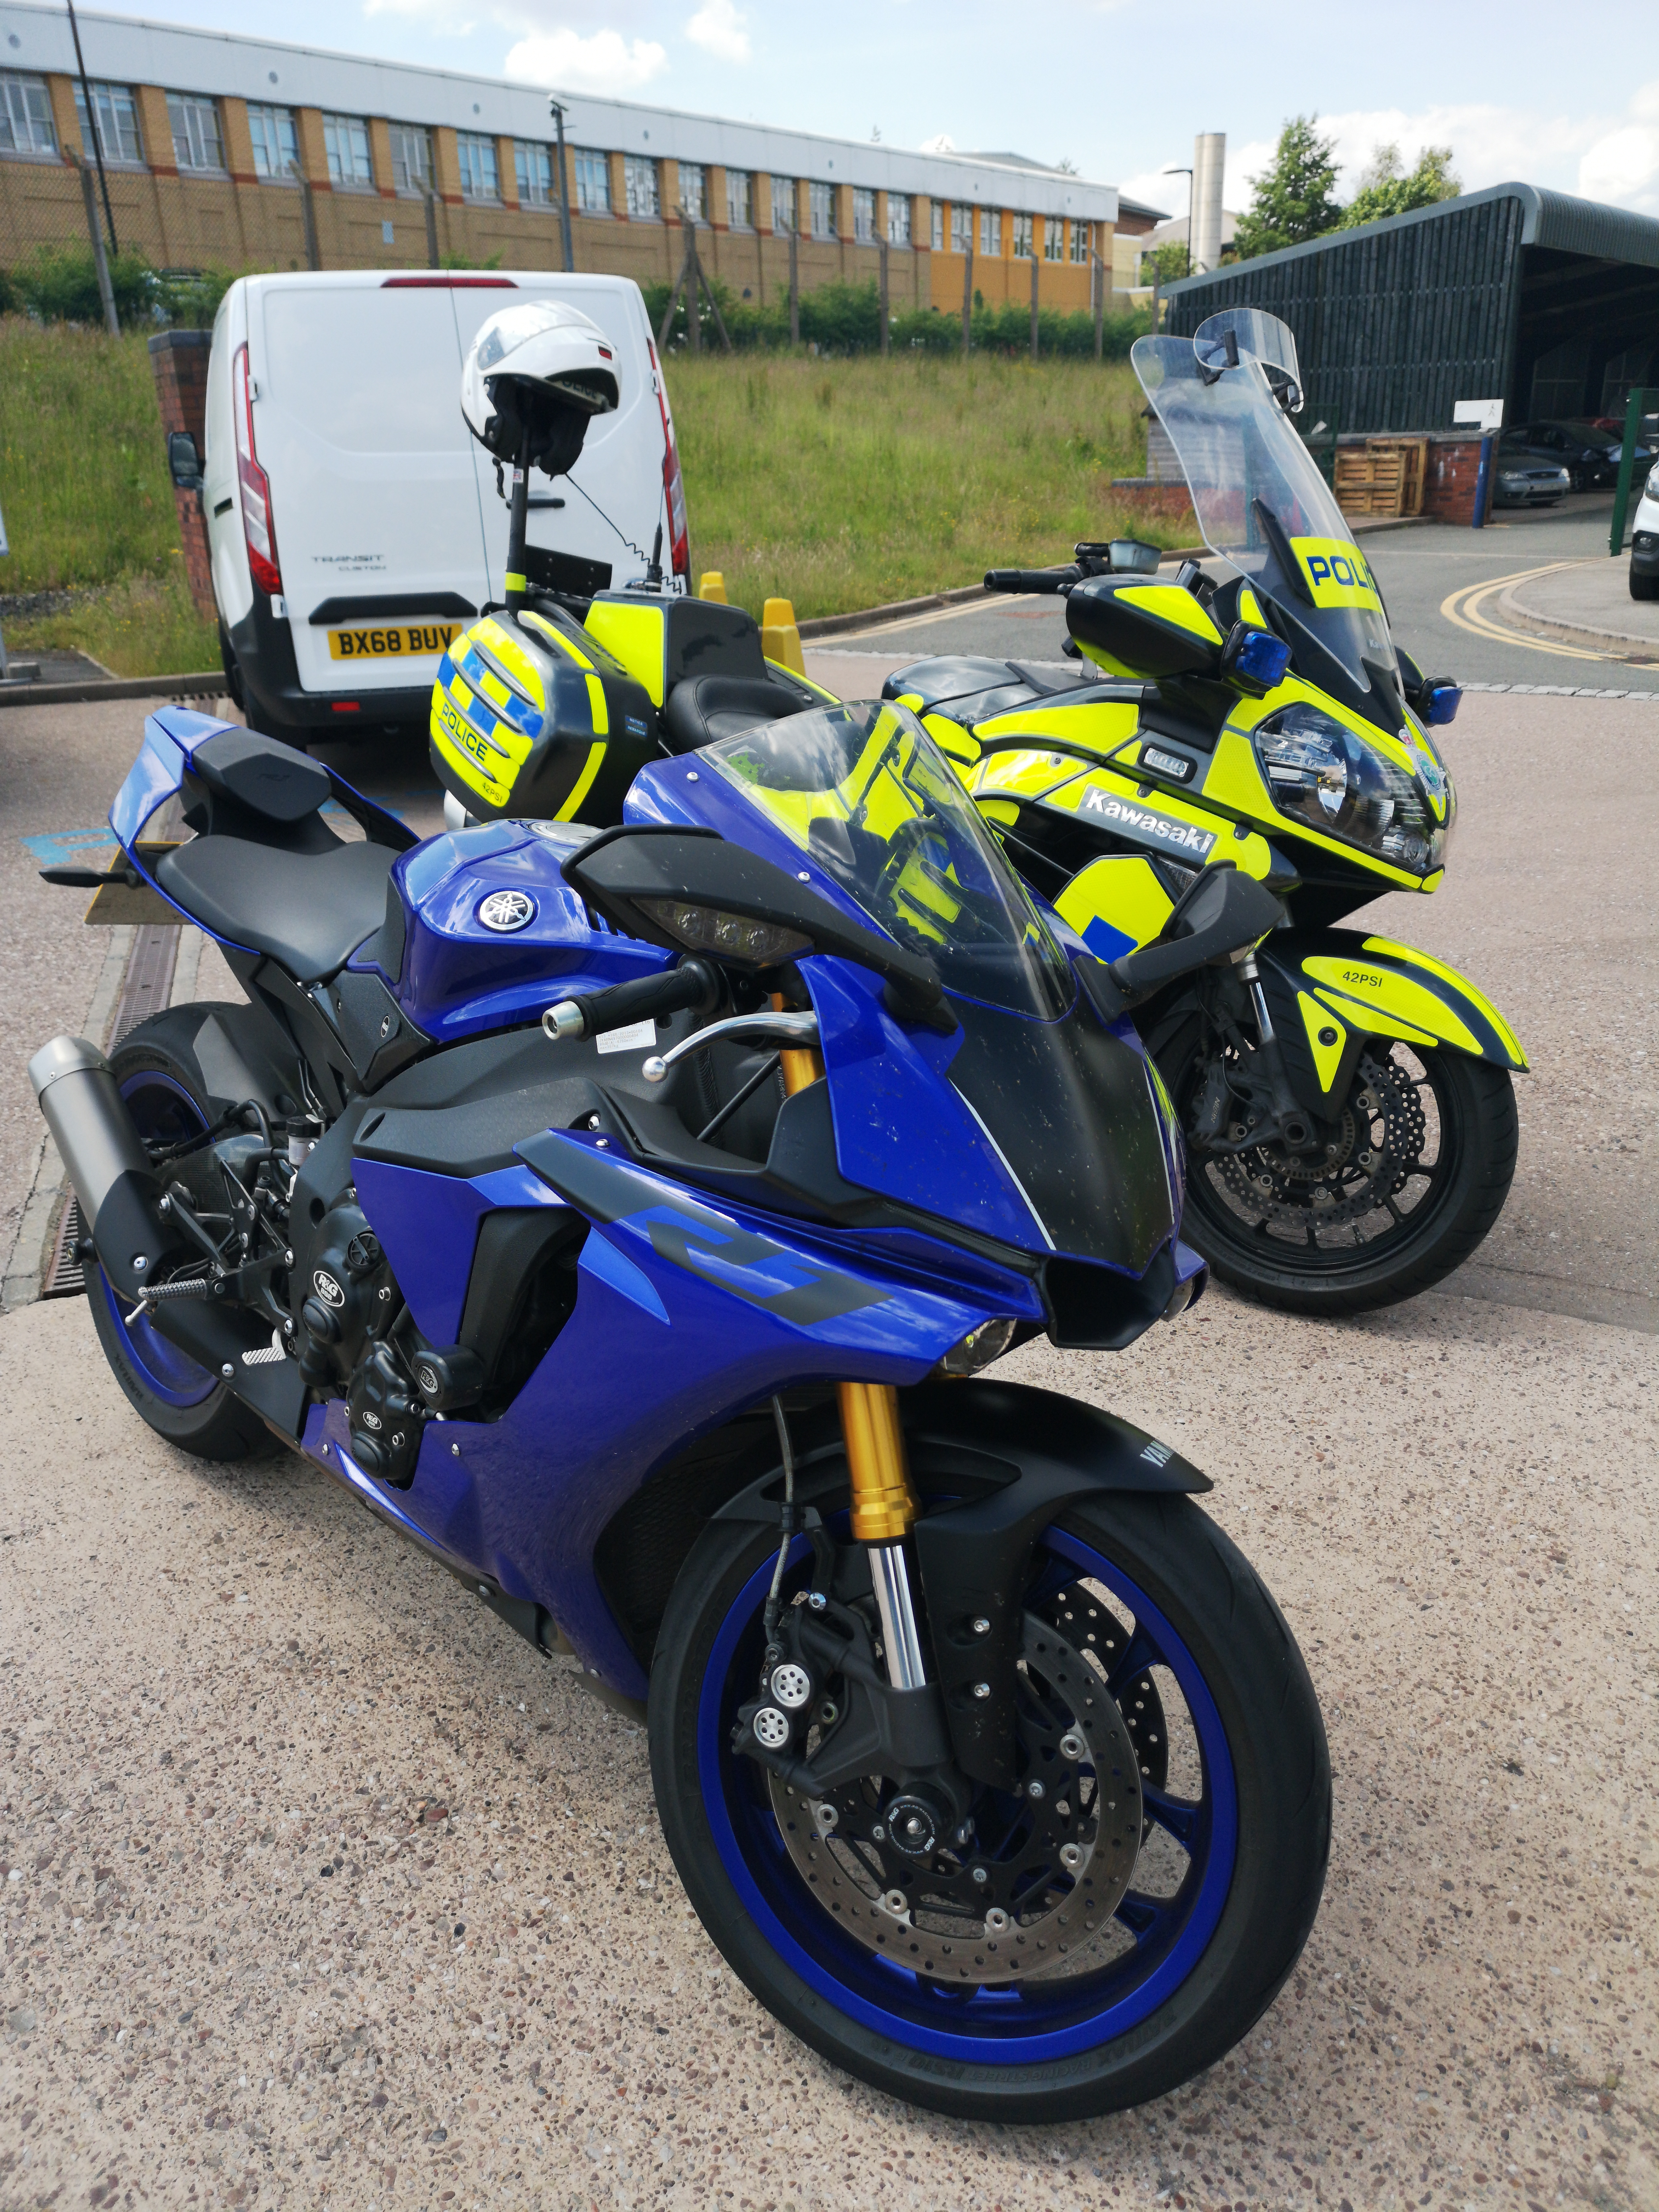 Bikesafe review